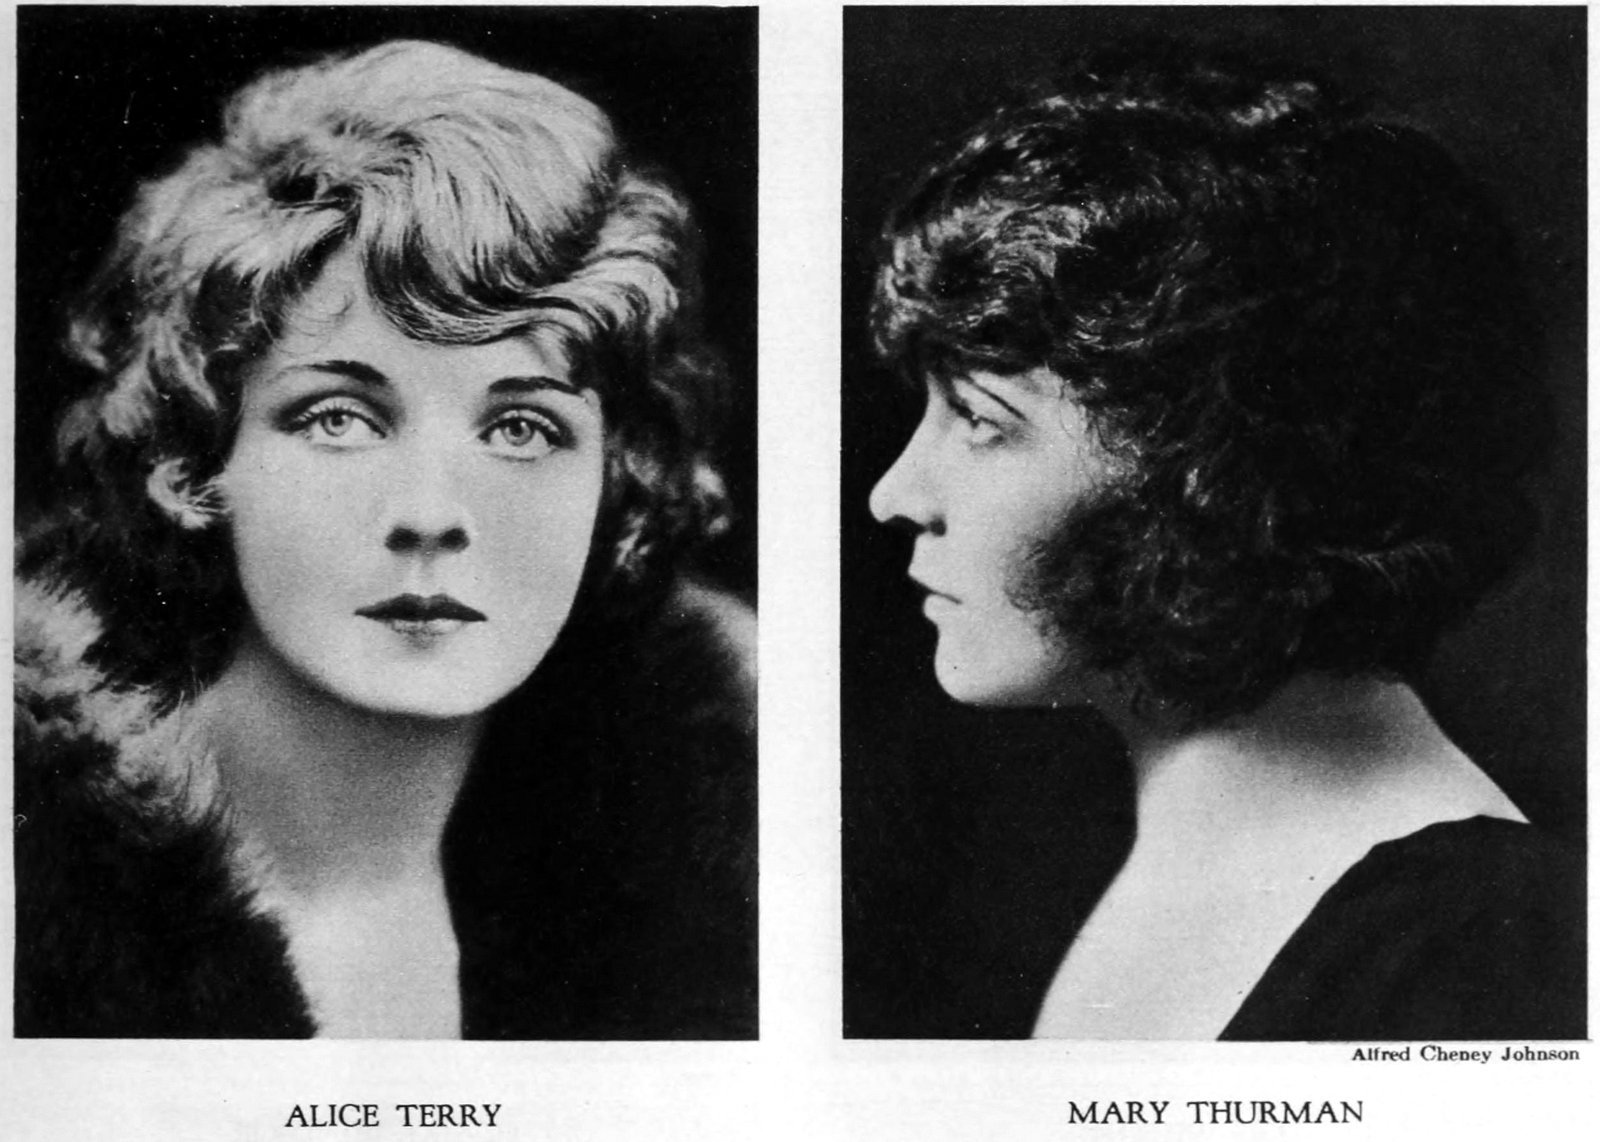 Vintage 1920s hairstyles - Alice Terry and Mary Thurman with bob haircuts